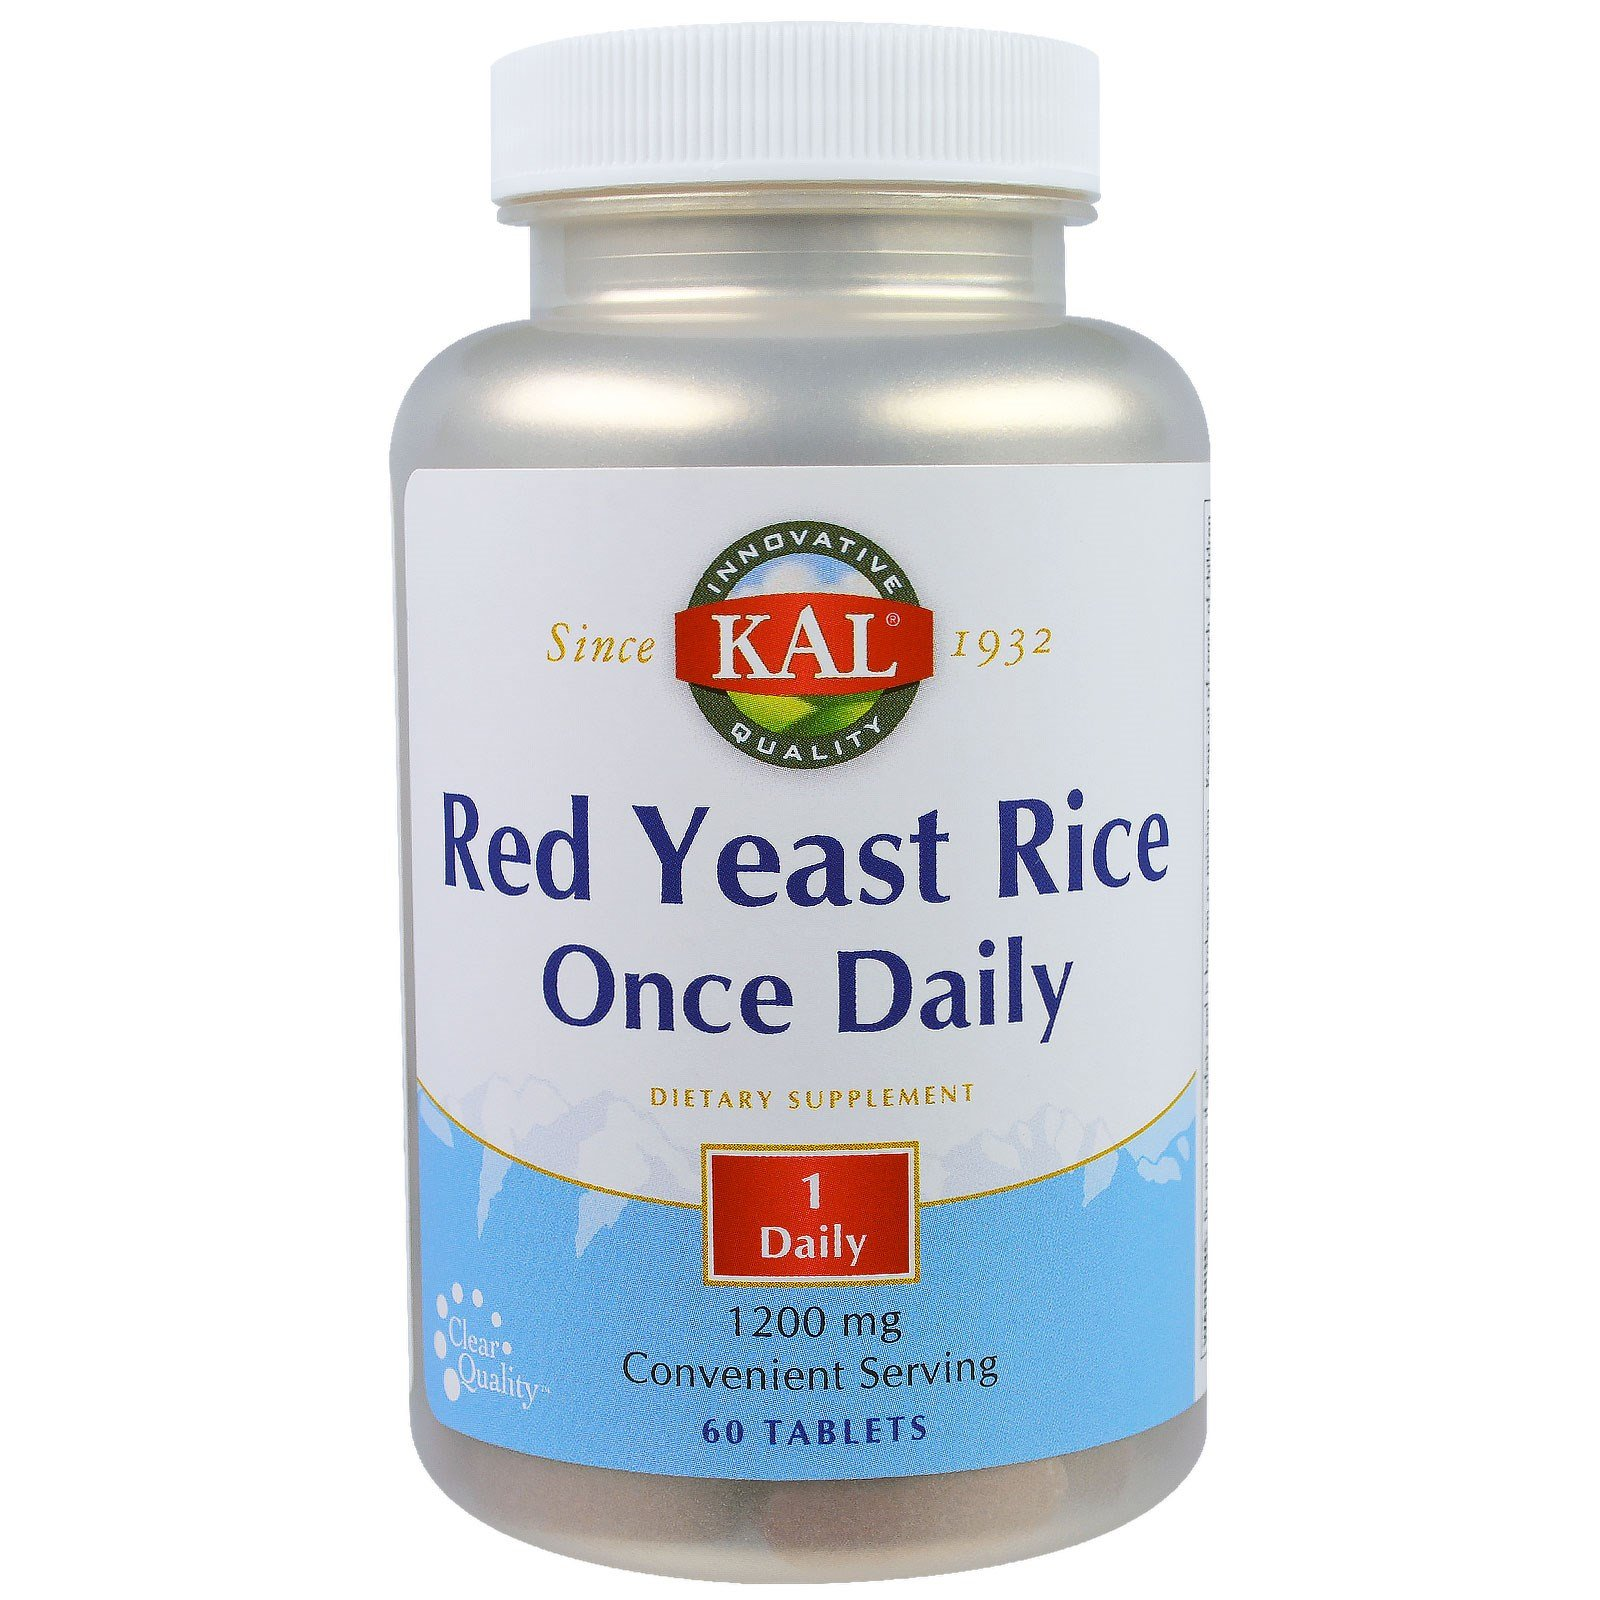 KAL, Red Yeast Rice, Once Daily, 1200 mg, 60 Tablets(Pack of 3)